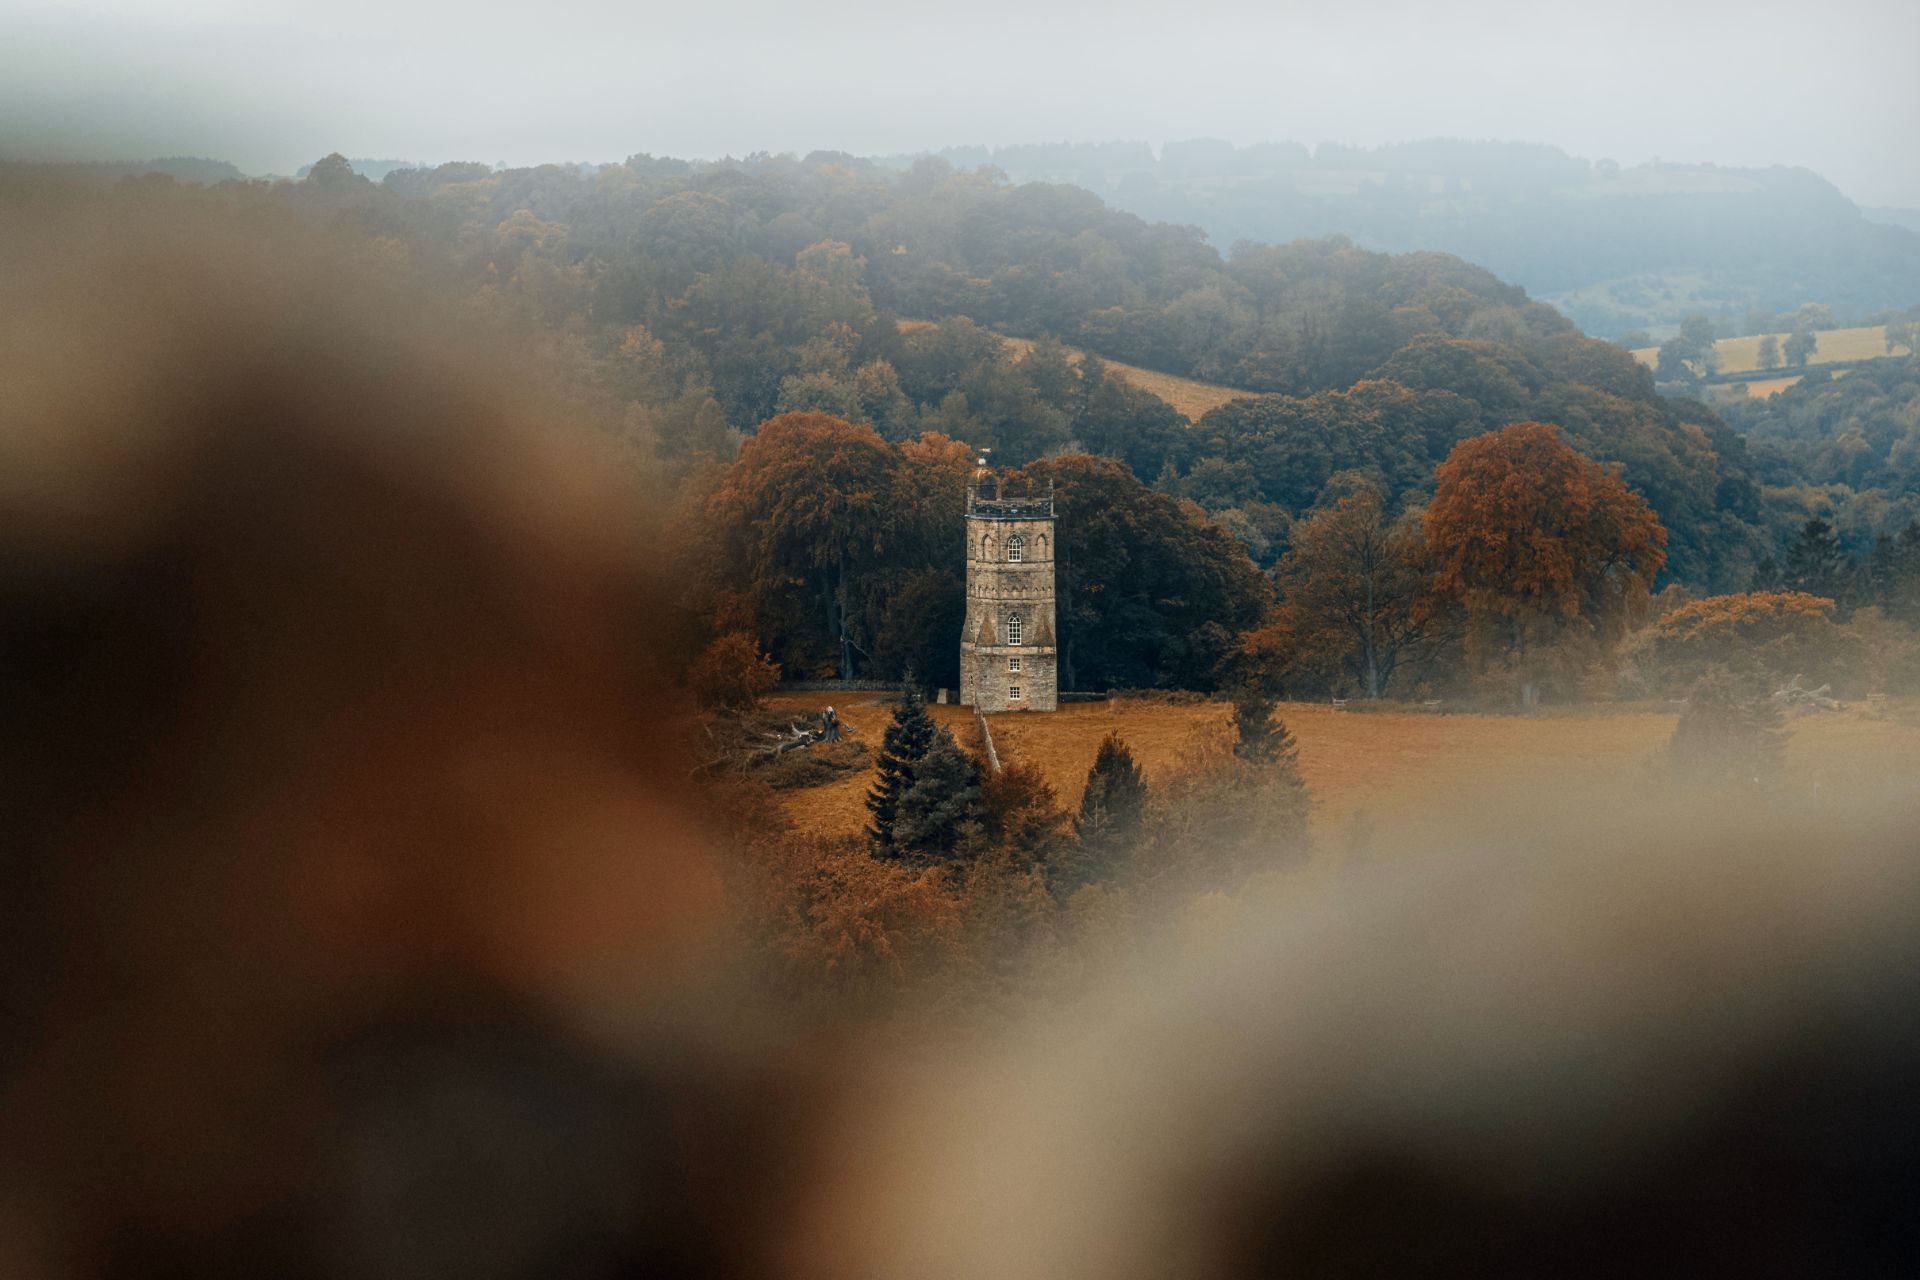 church-building-in-fields-in-dark-autumn-weather-in-the-yorkshire-dales-day-trips-from-leeds-england-uk